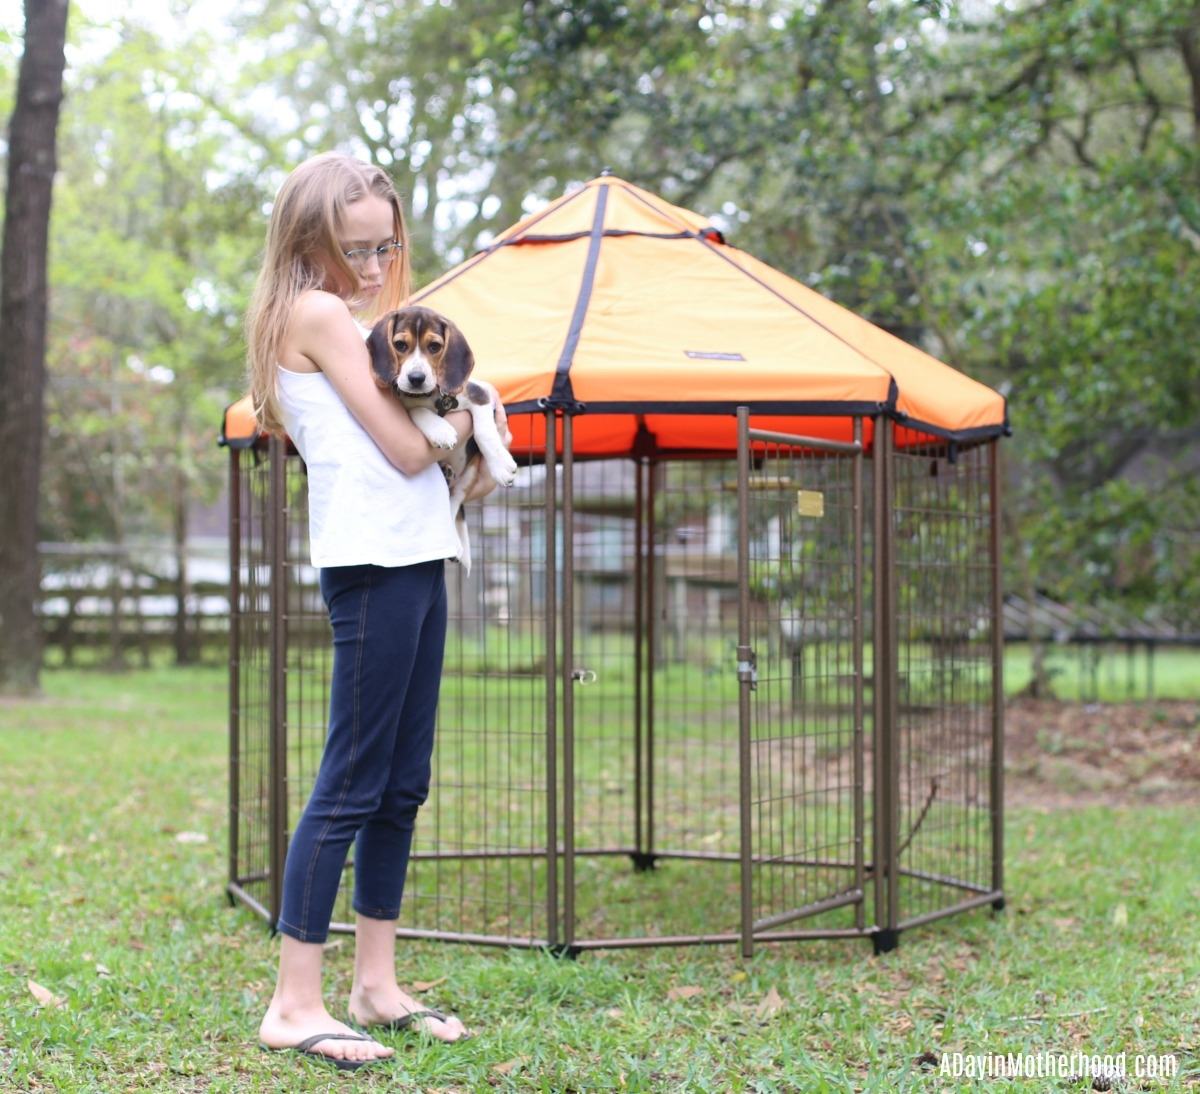 Spoil Your Dog in a Relaxing Kennel from the The Pet Gazebo with kids too